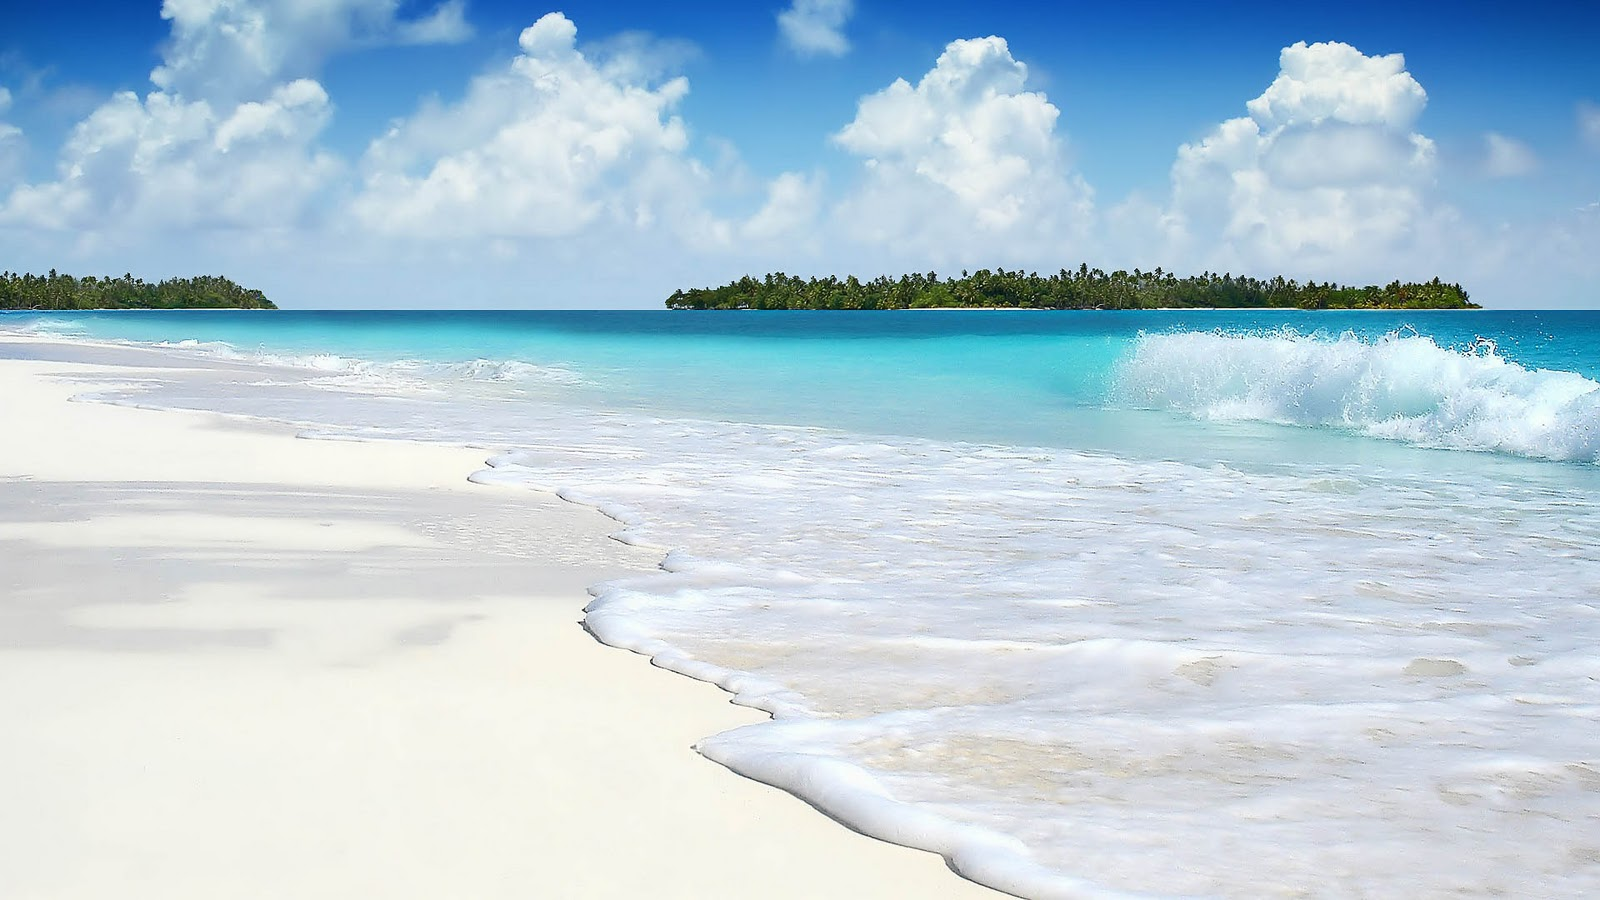 20+ Free Beach Sea Wallpapers HD Download